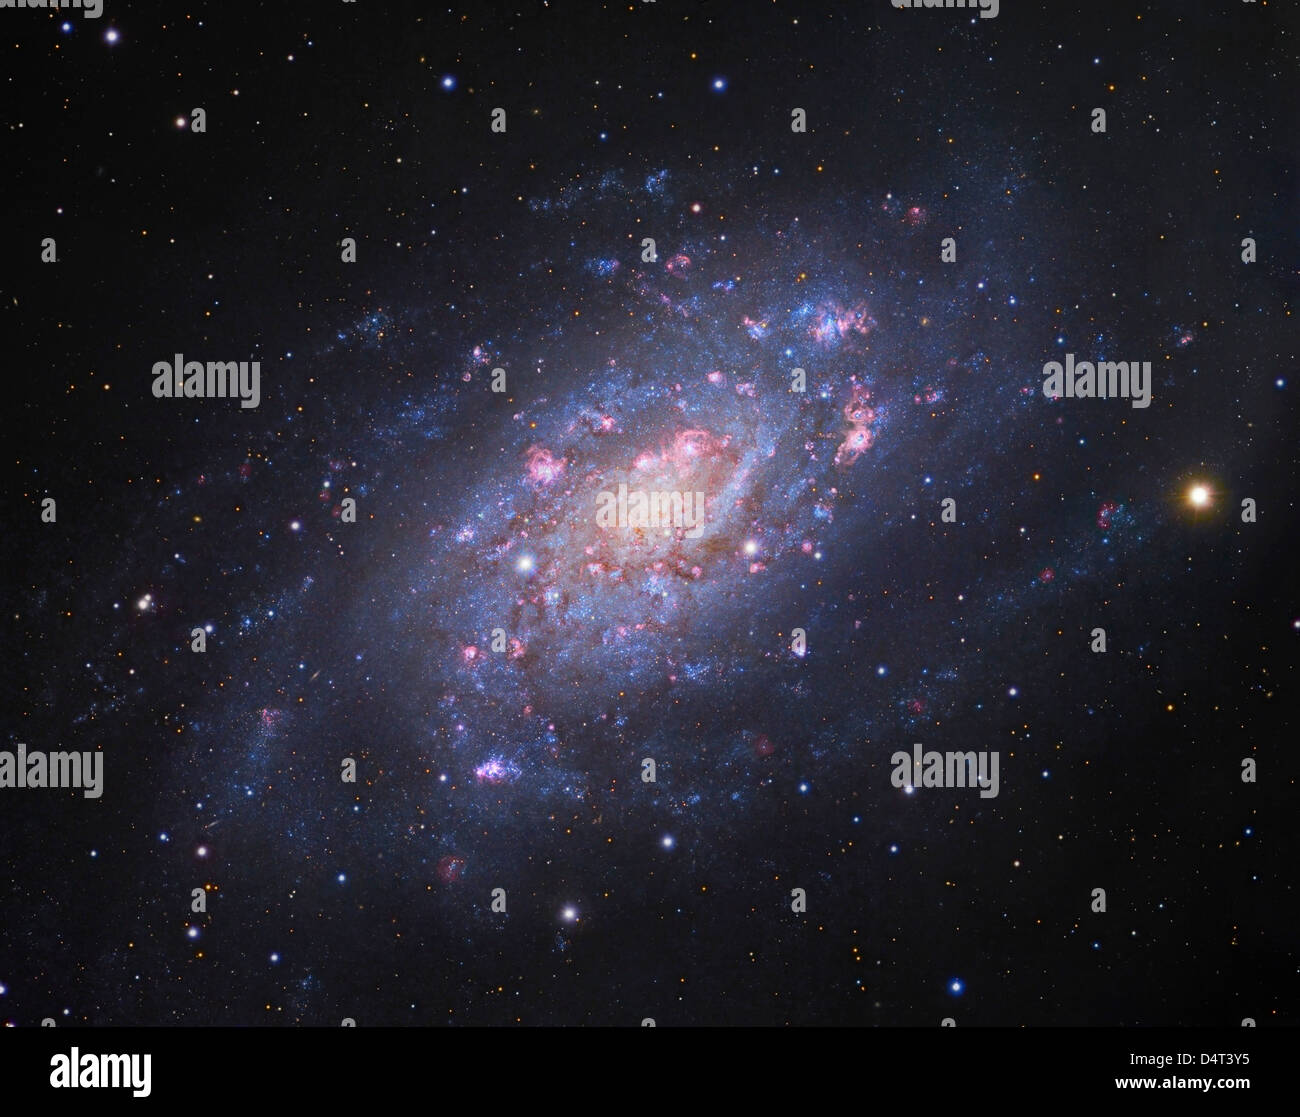 NGC 2403, a spiral galaxy in Camelopardalis.